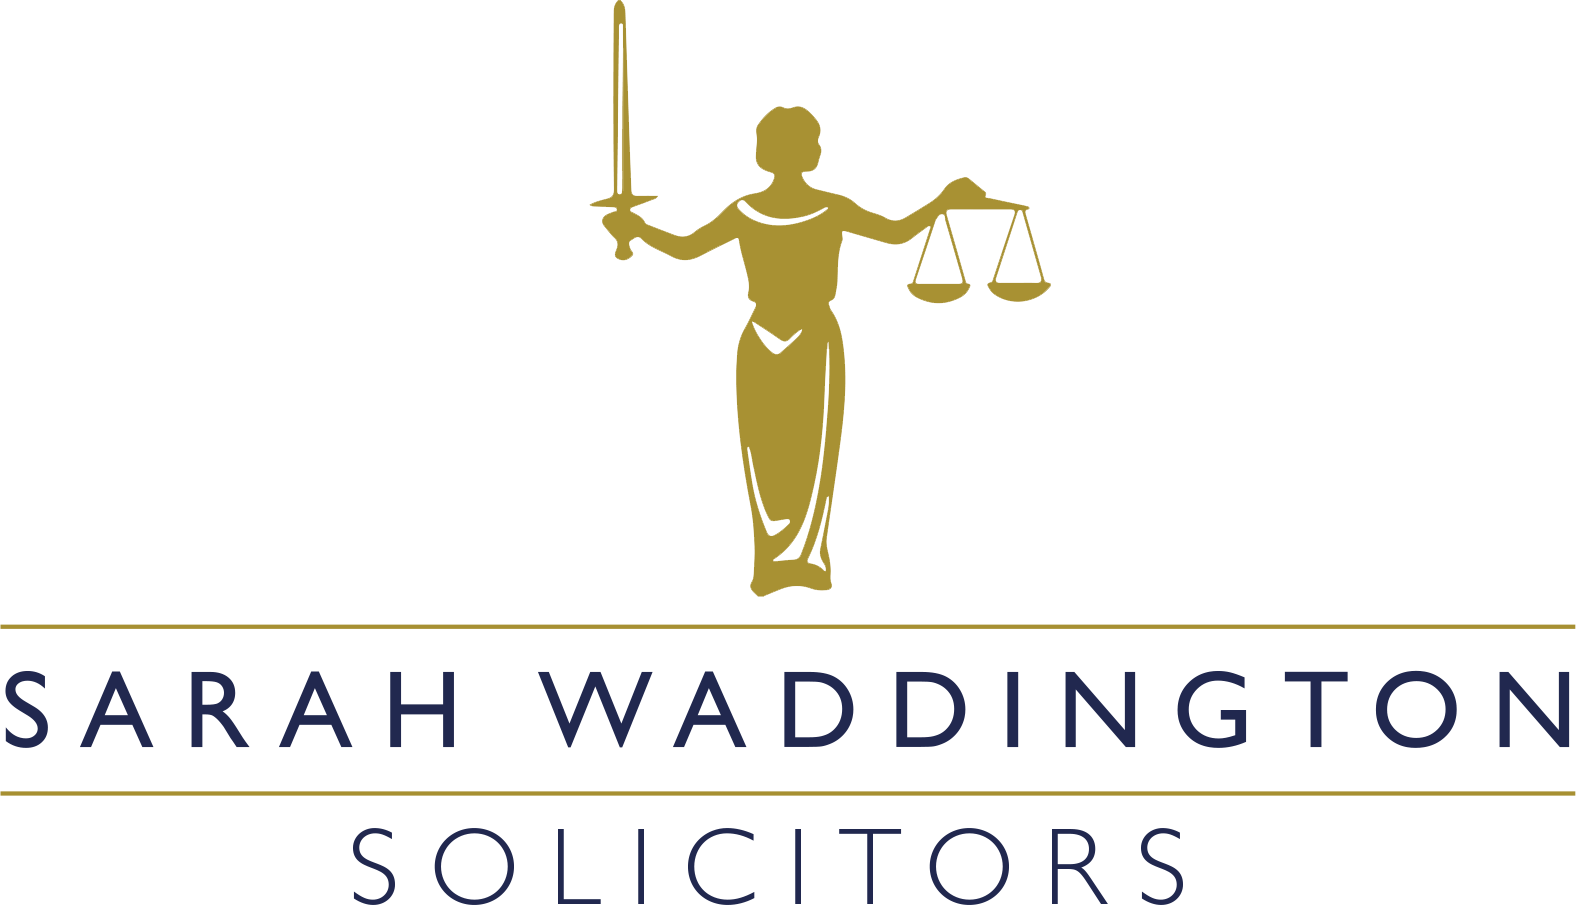 Sarah Waddington Solicitors